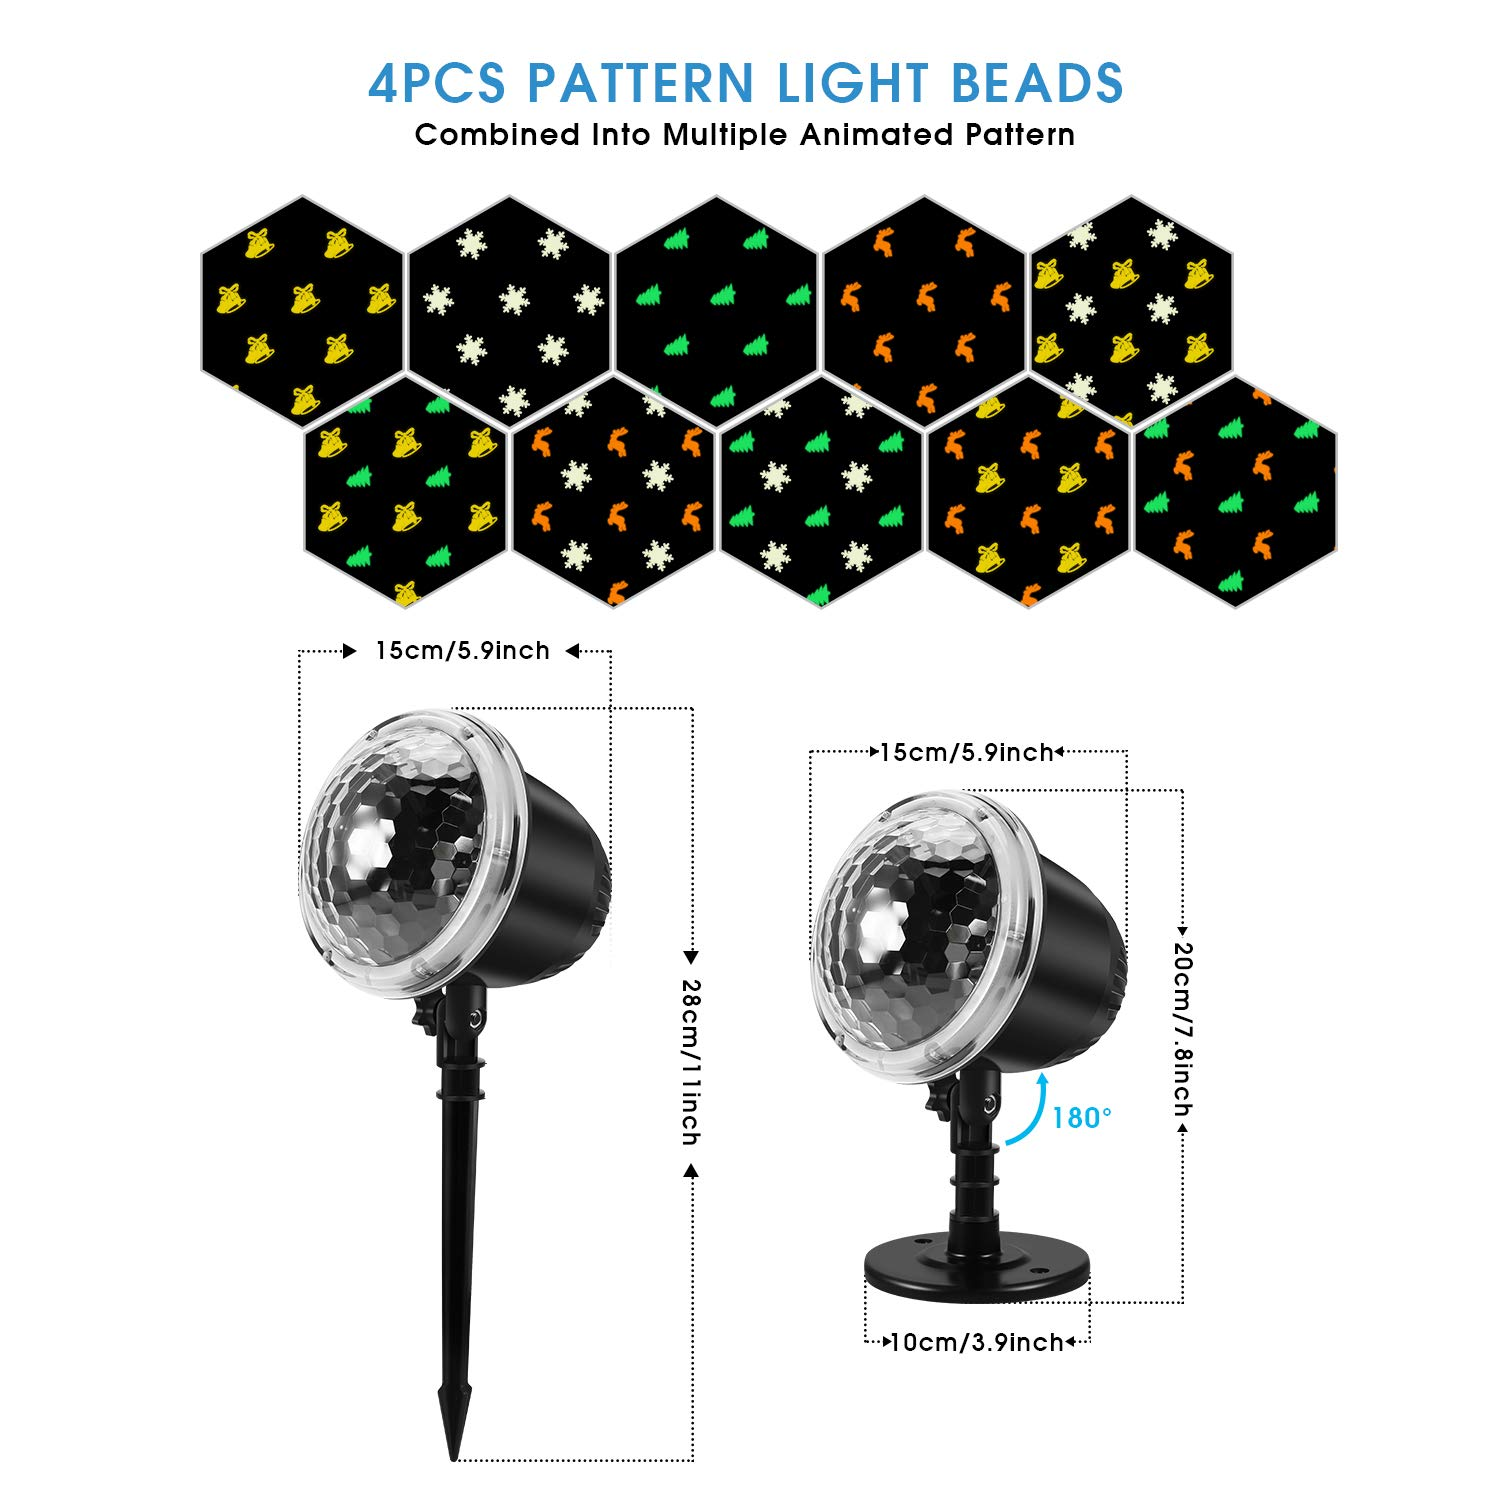 Christmas Projector Lights KINGWILL Indoor Outdoor Holiday Lights with Remote Control 4Pcs Pattern Light Bead for Xmas Home Party Garden Landscape Wall Decorations